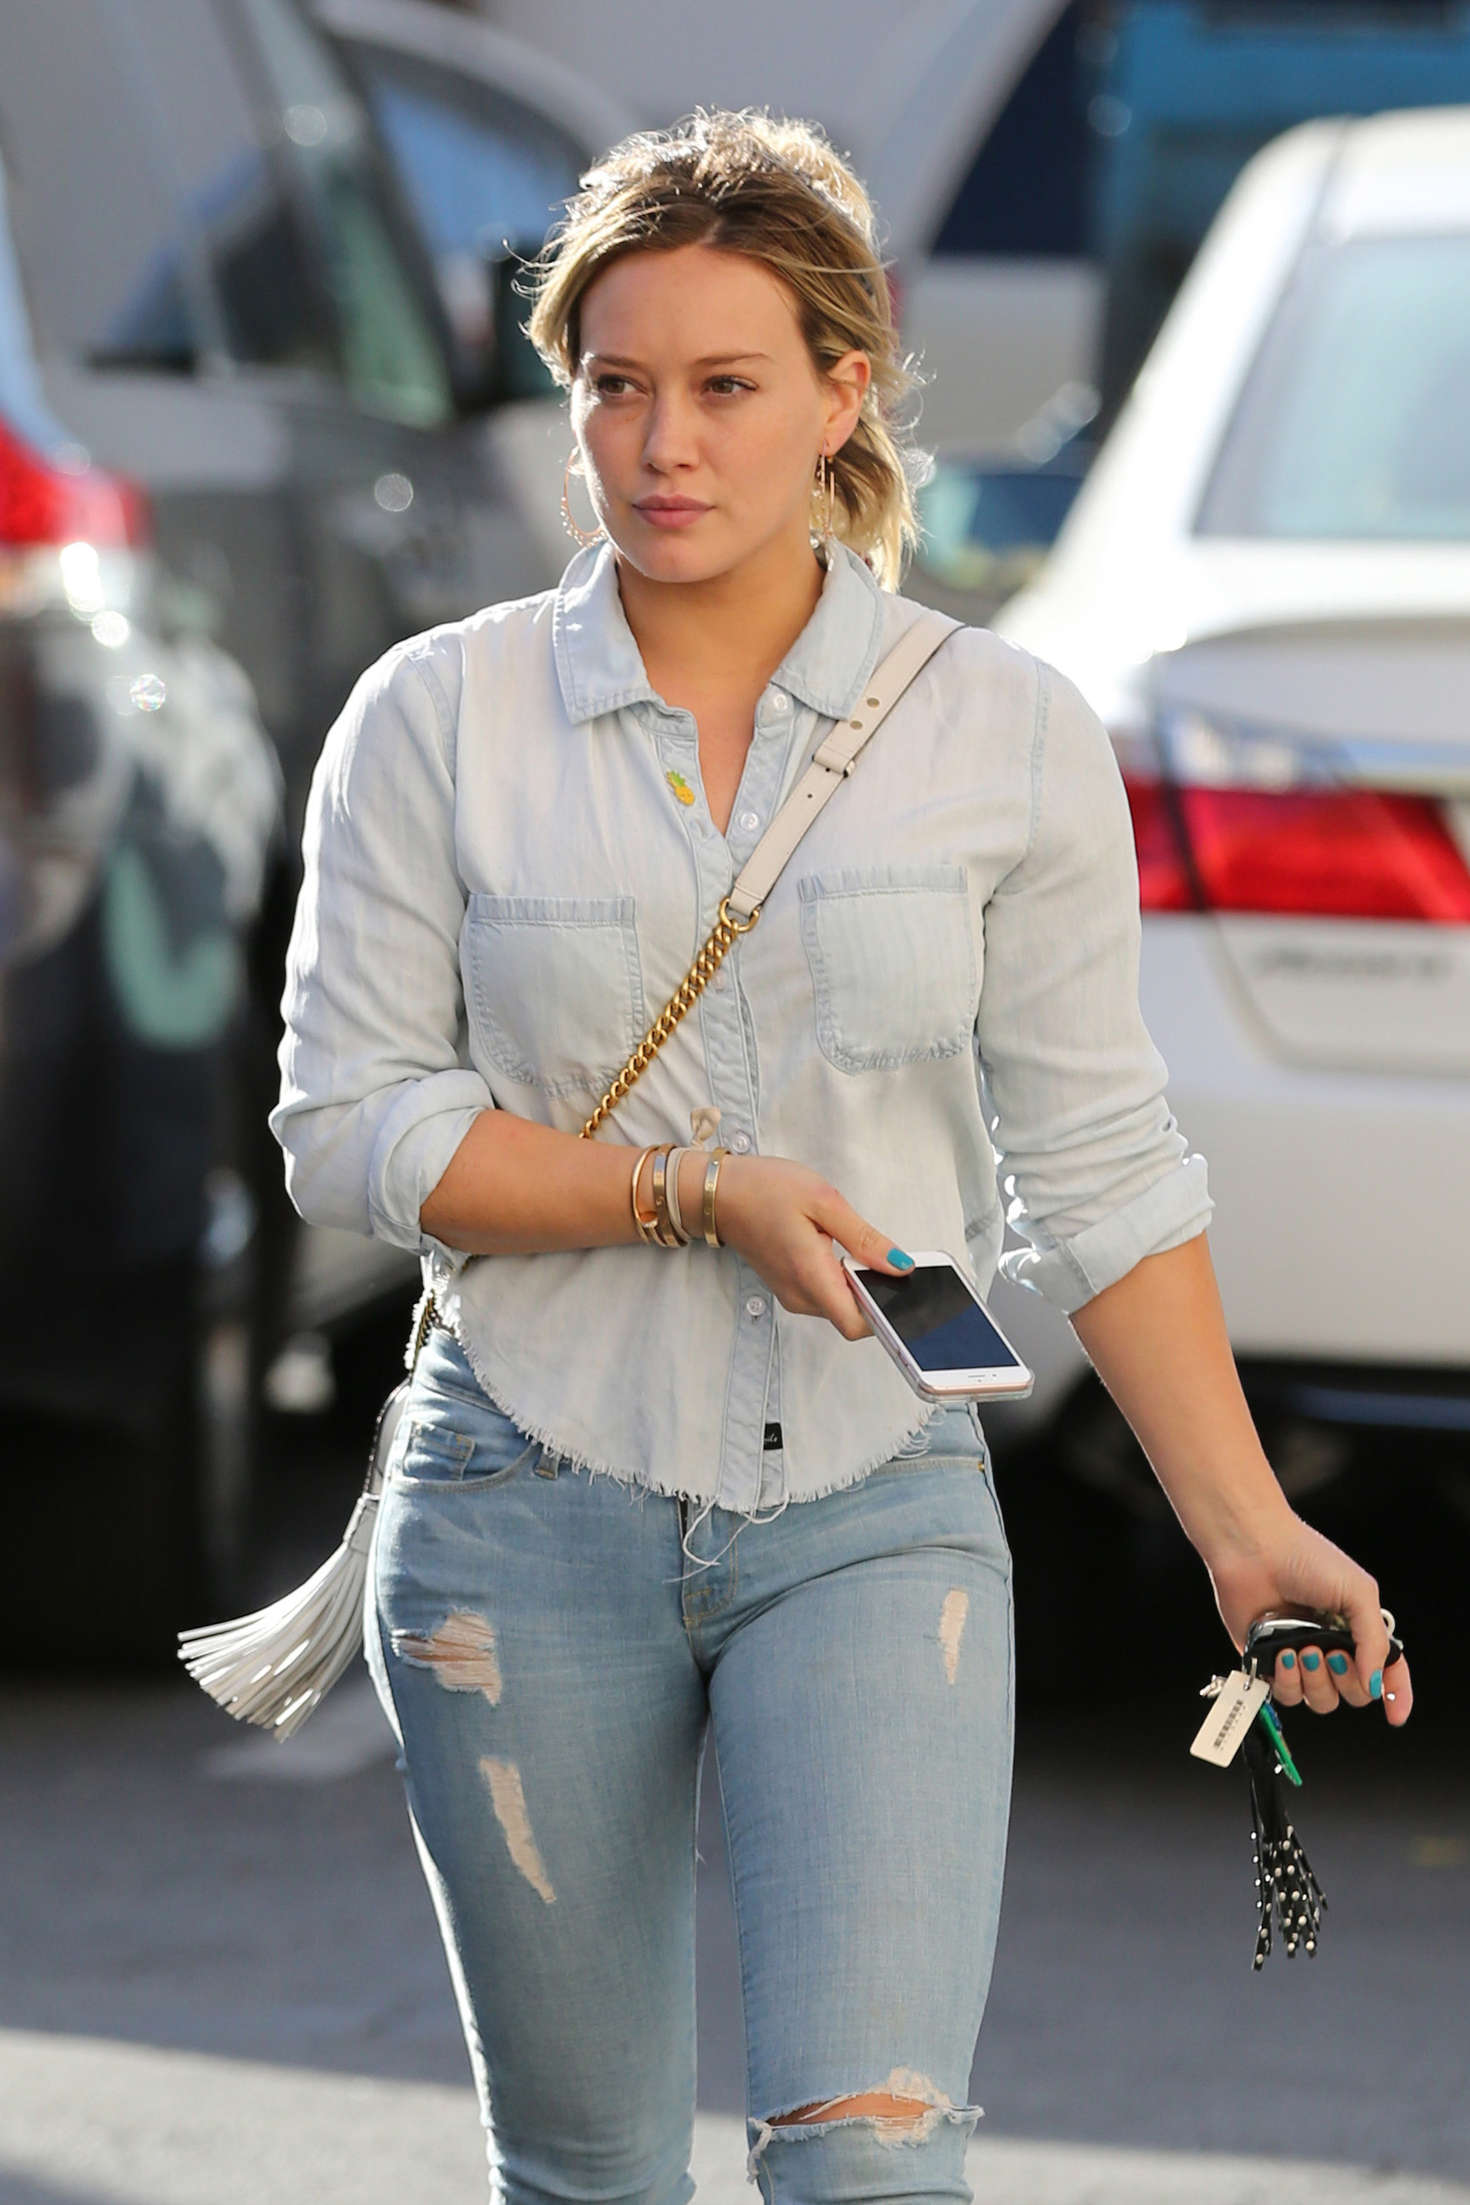 Hilary Duff - Visits the nail salon in Beverly Hills